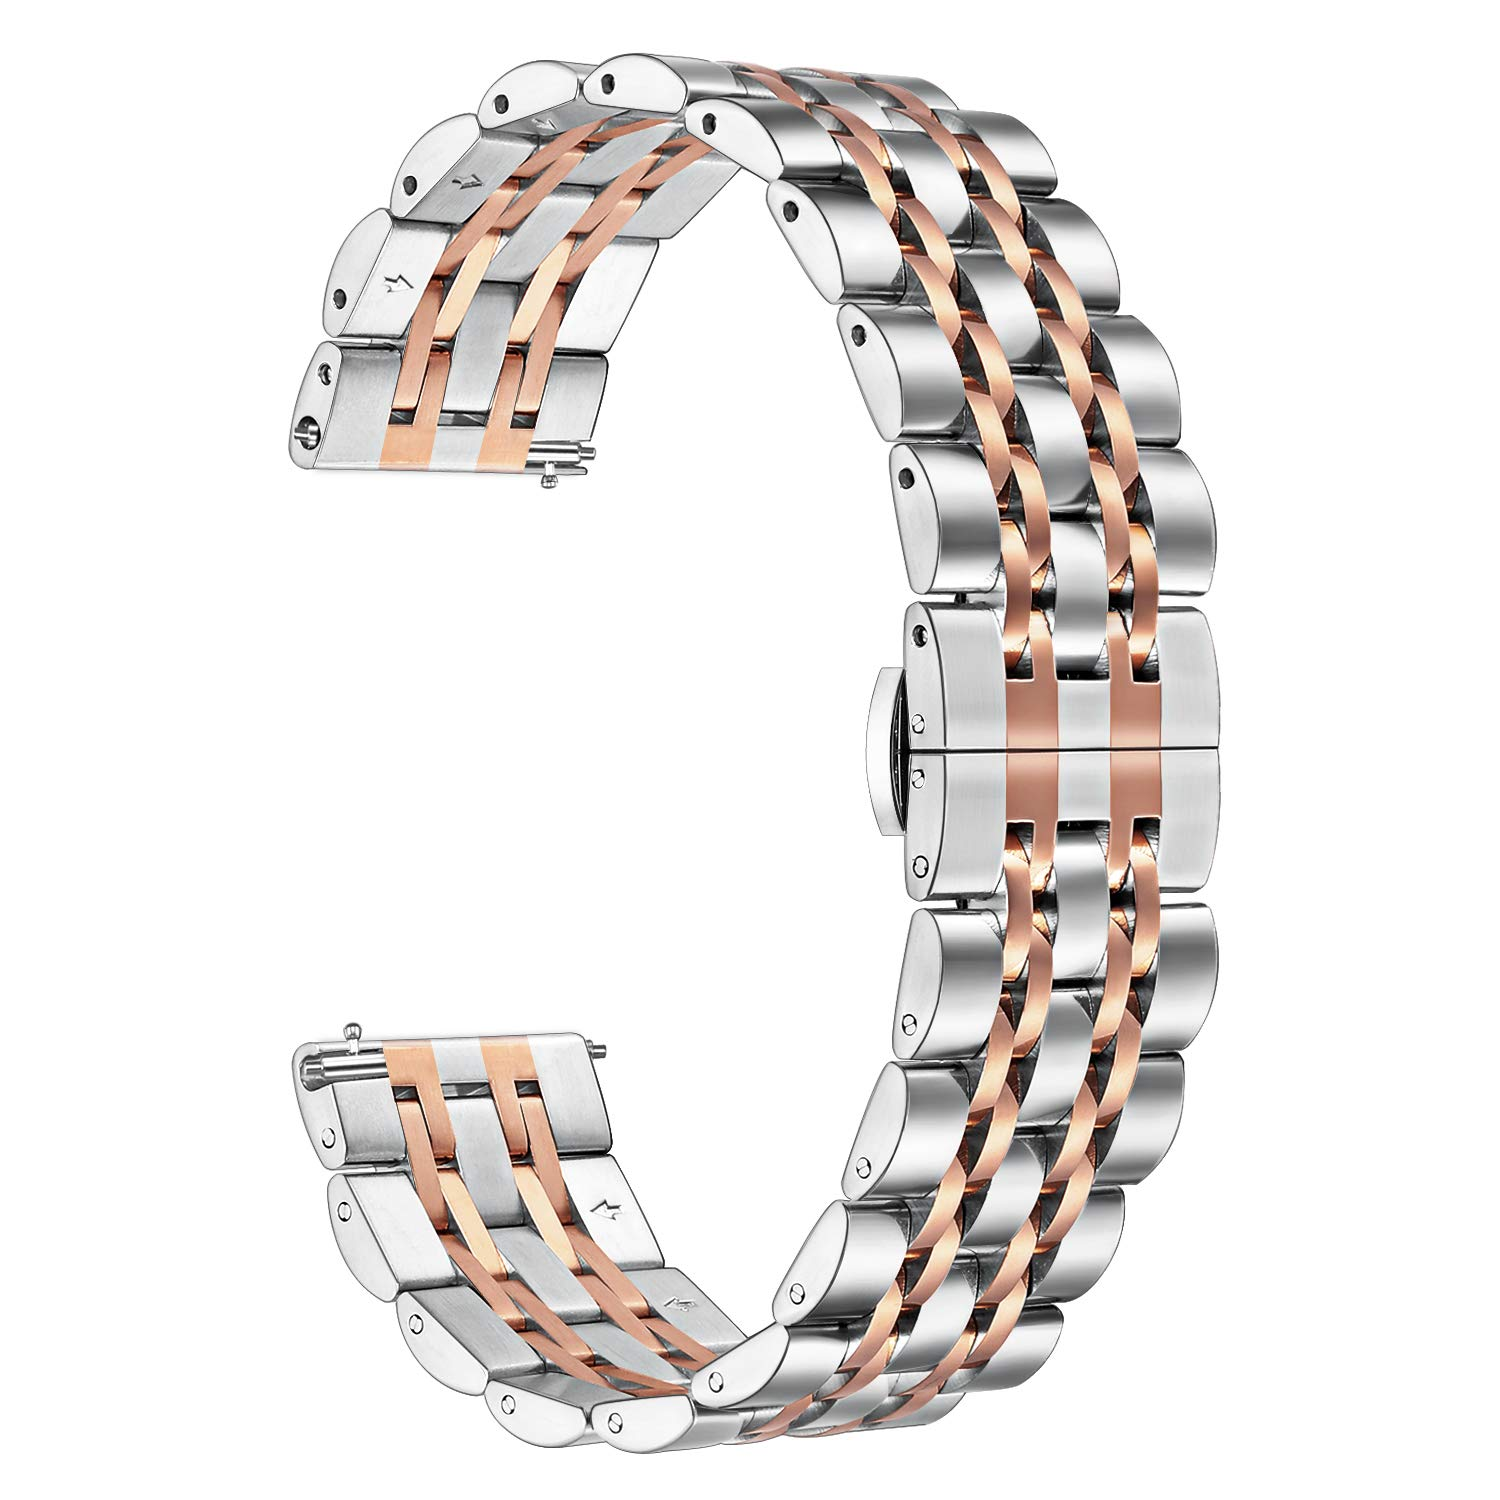 for Fossil Gen 4 Q Venture HR Women Bands, TRUMiRR 18mm Solid Quick Release Watch Band Stainless Steel Metal Butterfly Buckle Strap for Fossil Gen 3 Q Venture LG Watch Style